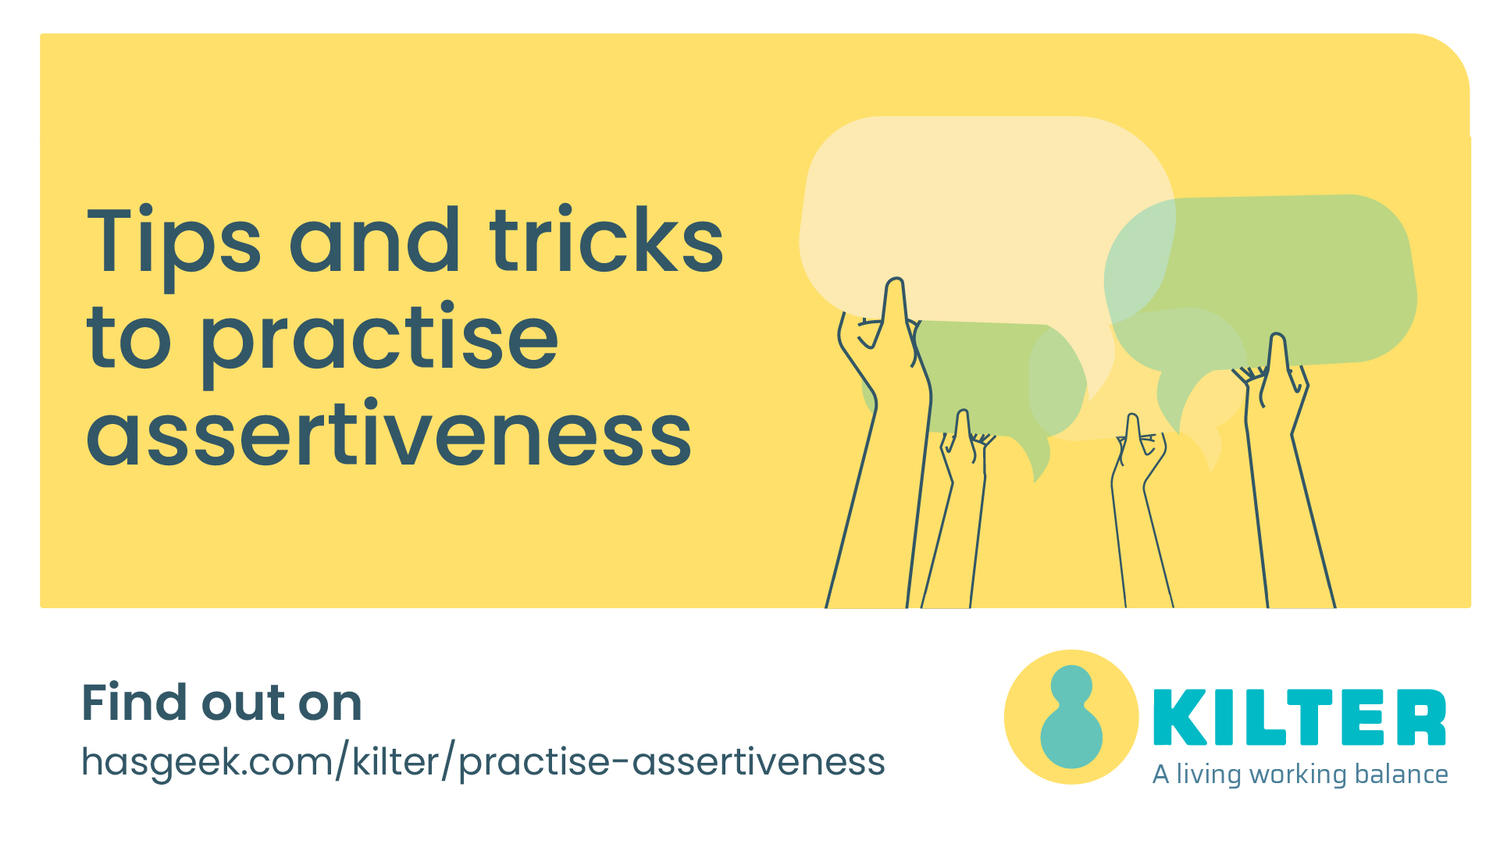 Tips and tricks to practise assertiveness